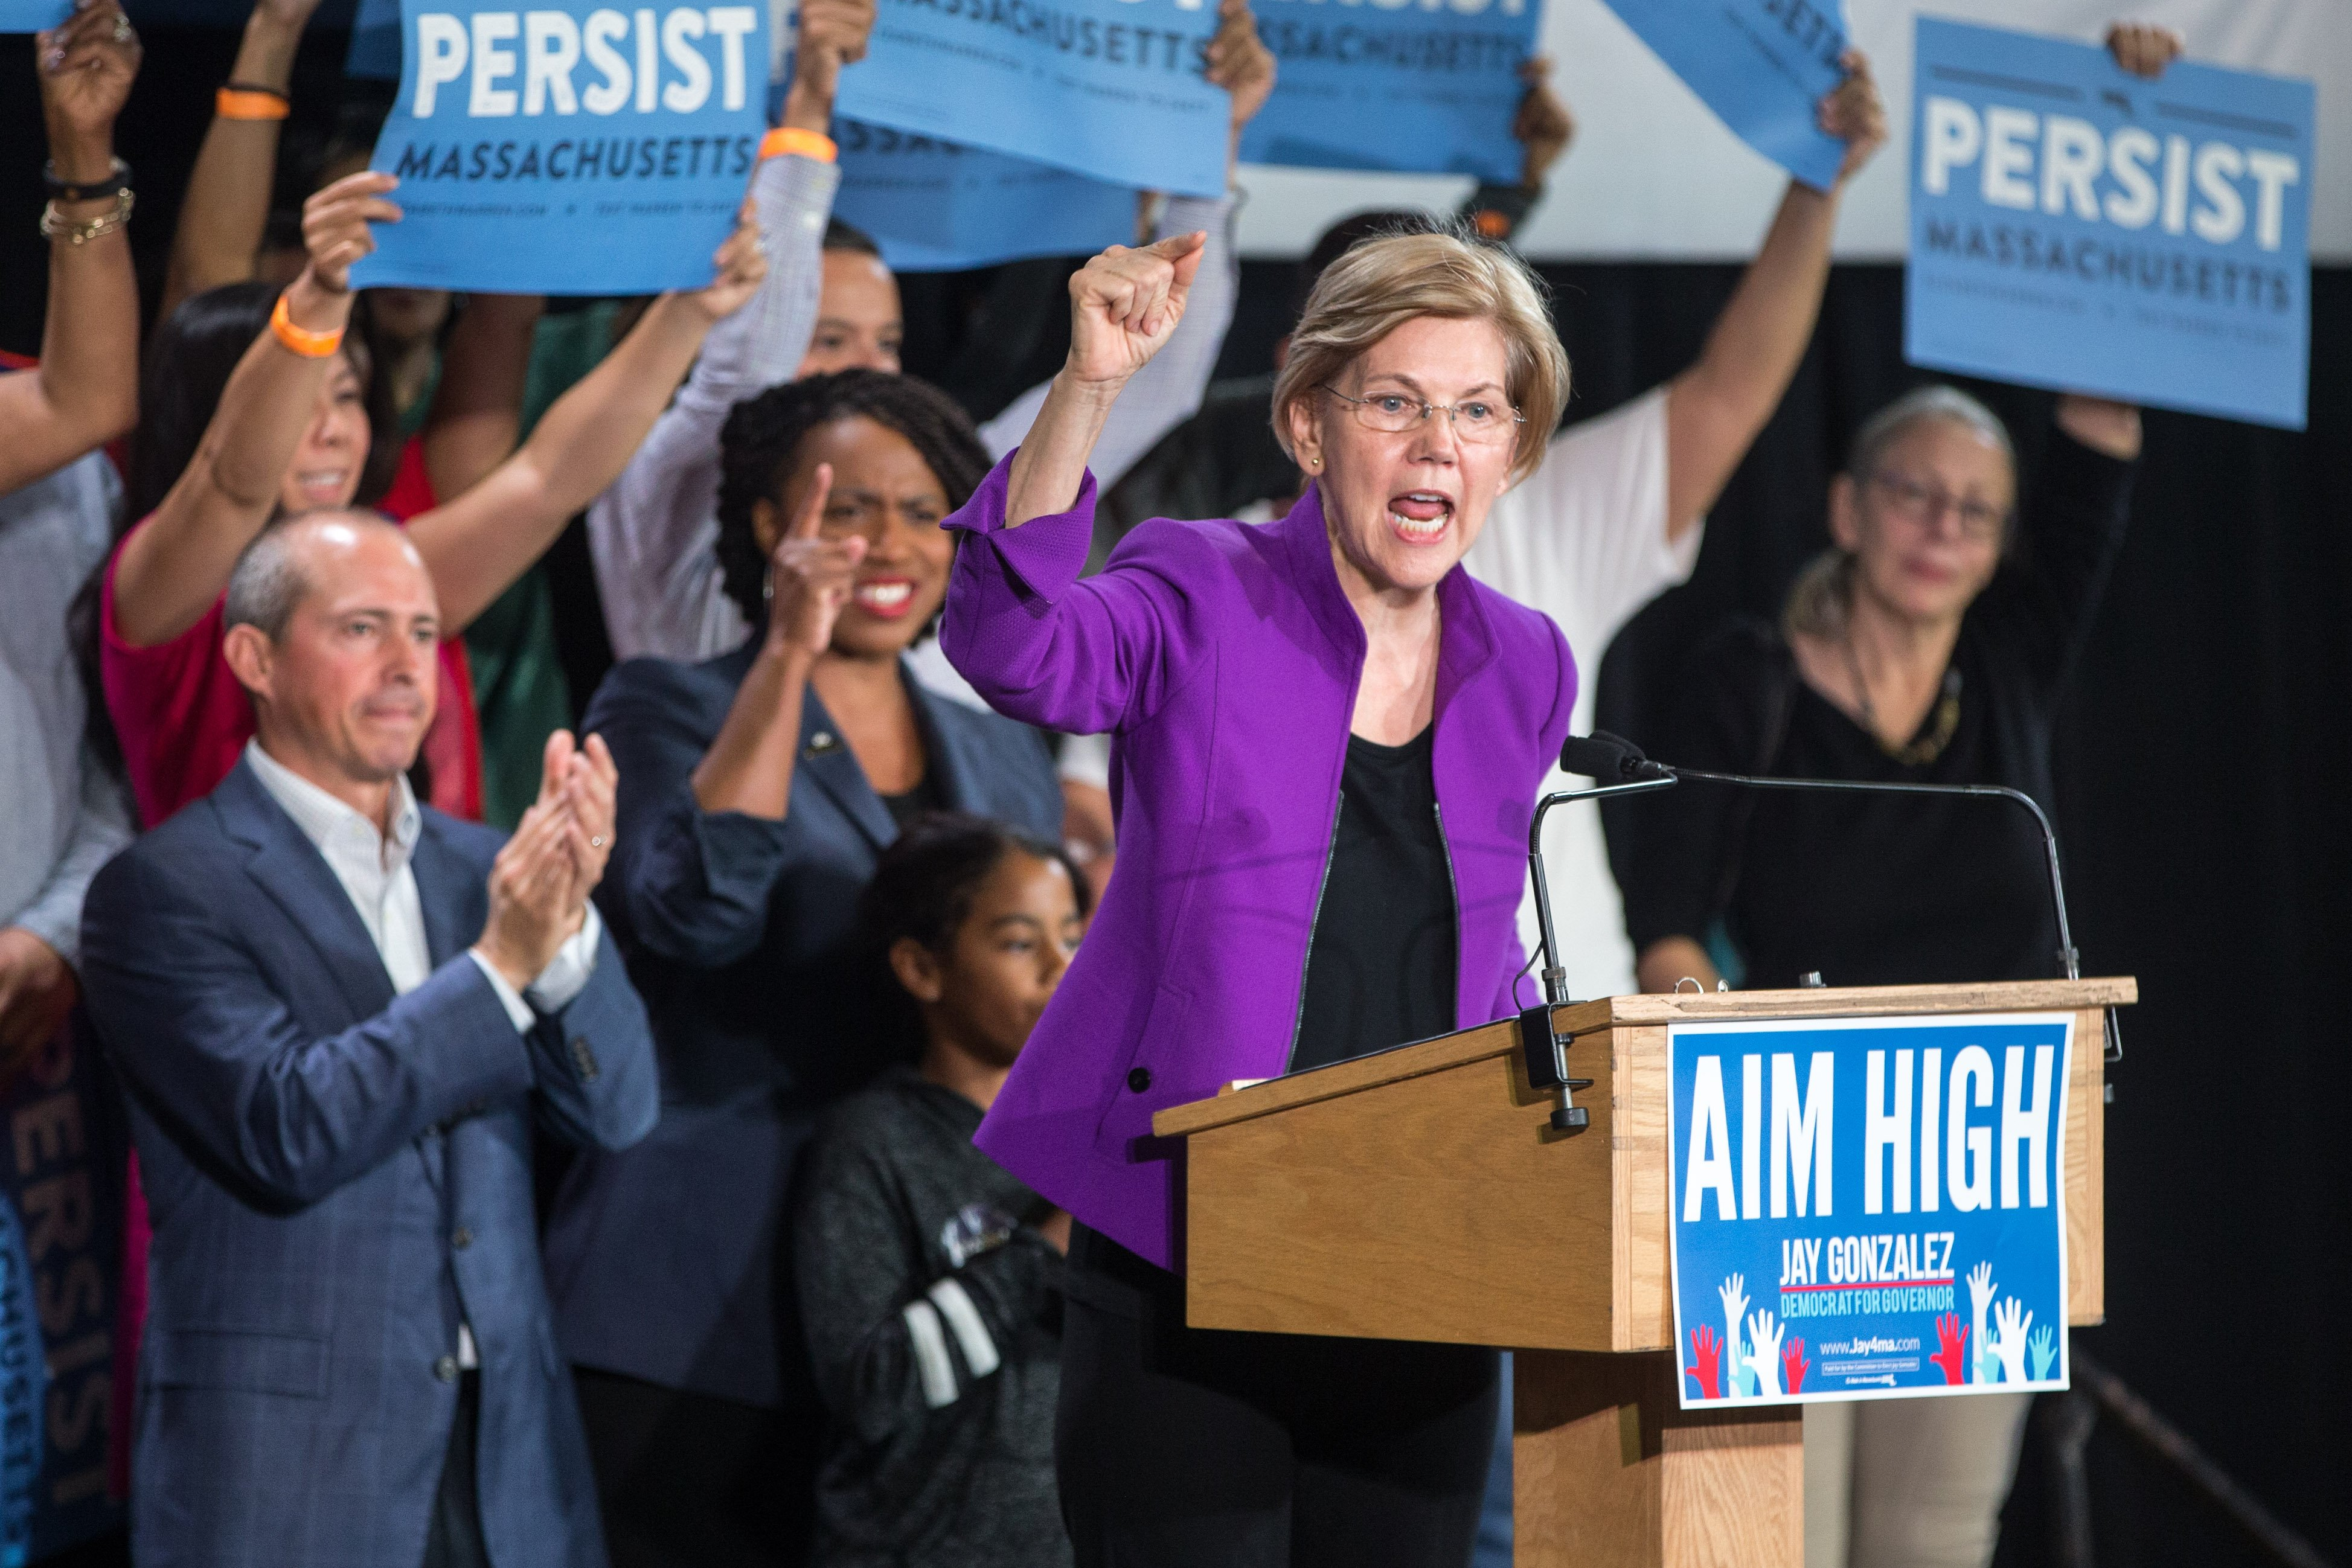 CAMBRIDGE, MA - SEPTEMBER 09: U.S. Sen. Elizabeth Warren speaks at a rally held for Democratic gubernatorial candidate Jay Gonzalez (L) and congressional Democratic candidate Ayanna Pressley (2nd L) on September 9, 2018 in Cambridge, Massachusetts. (Photo by Scott Eisen/Getty Images)